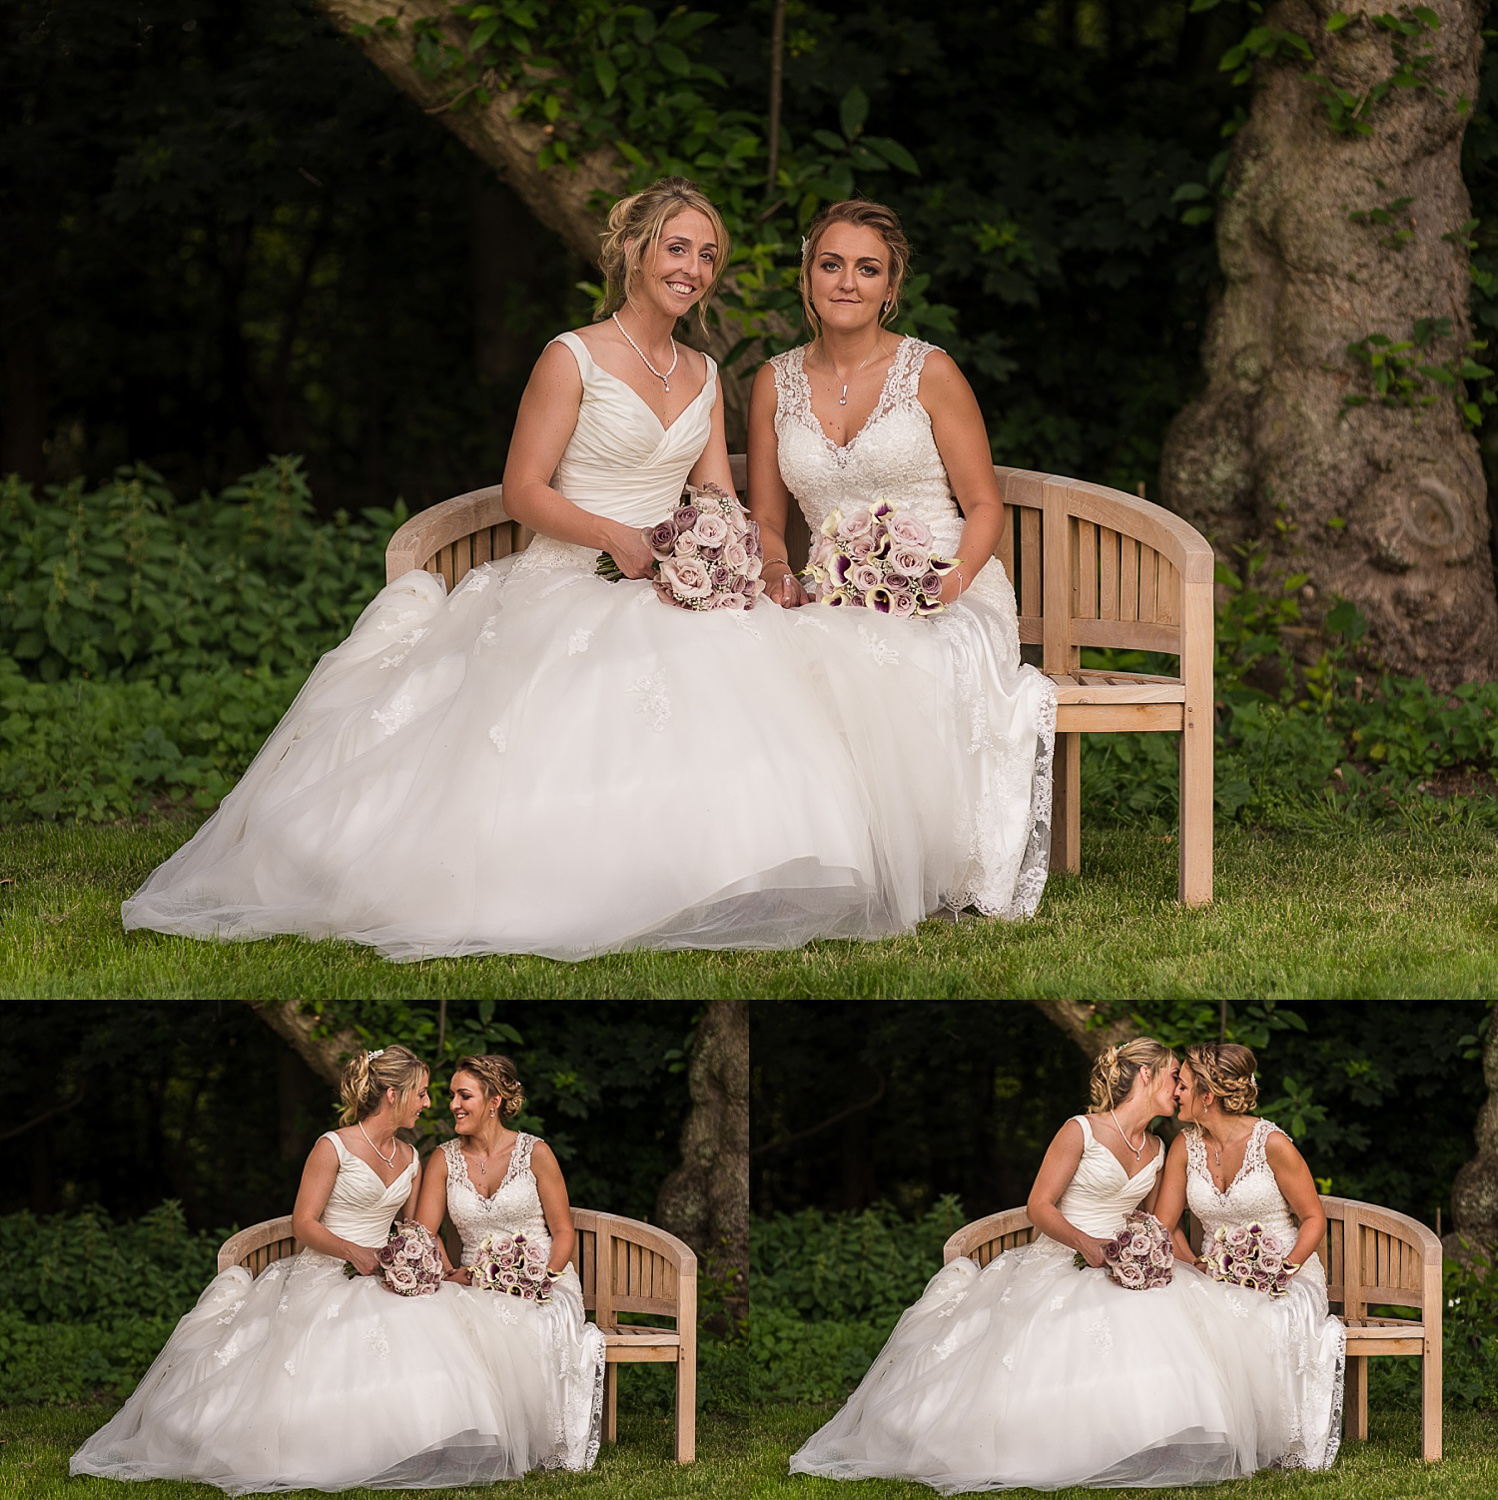 LGBT wedding at Hazel Gap Barn